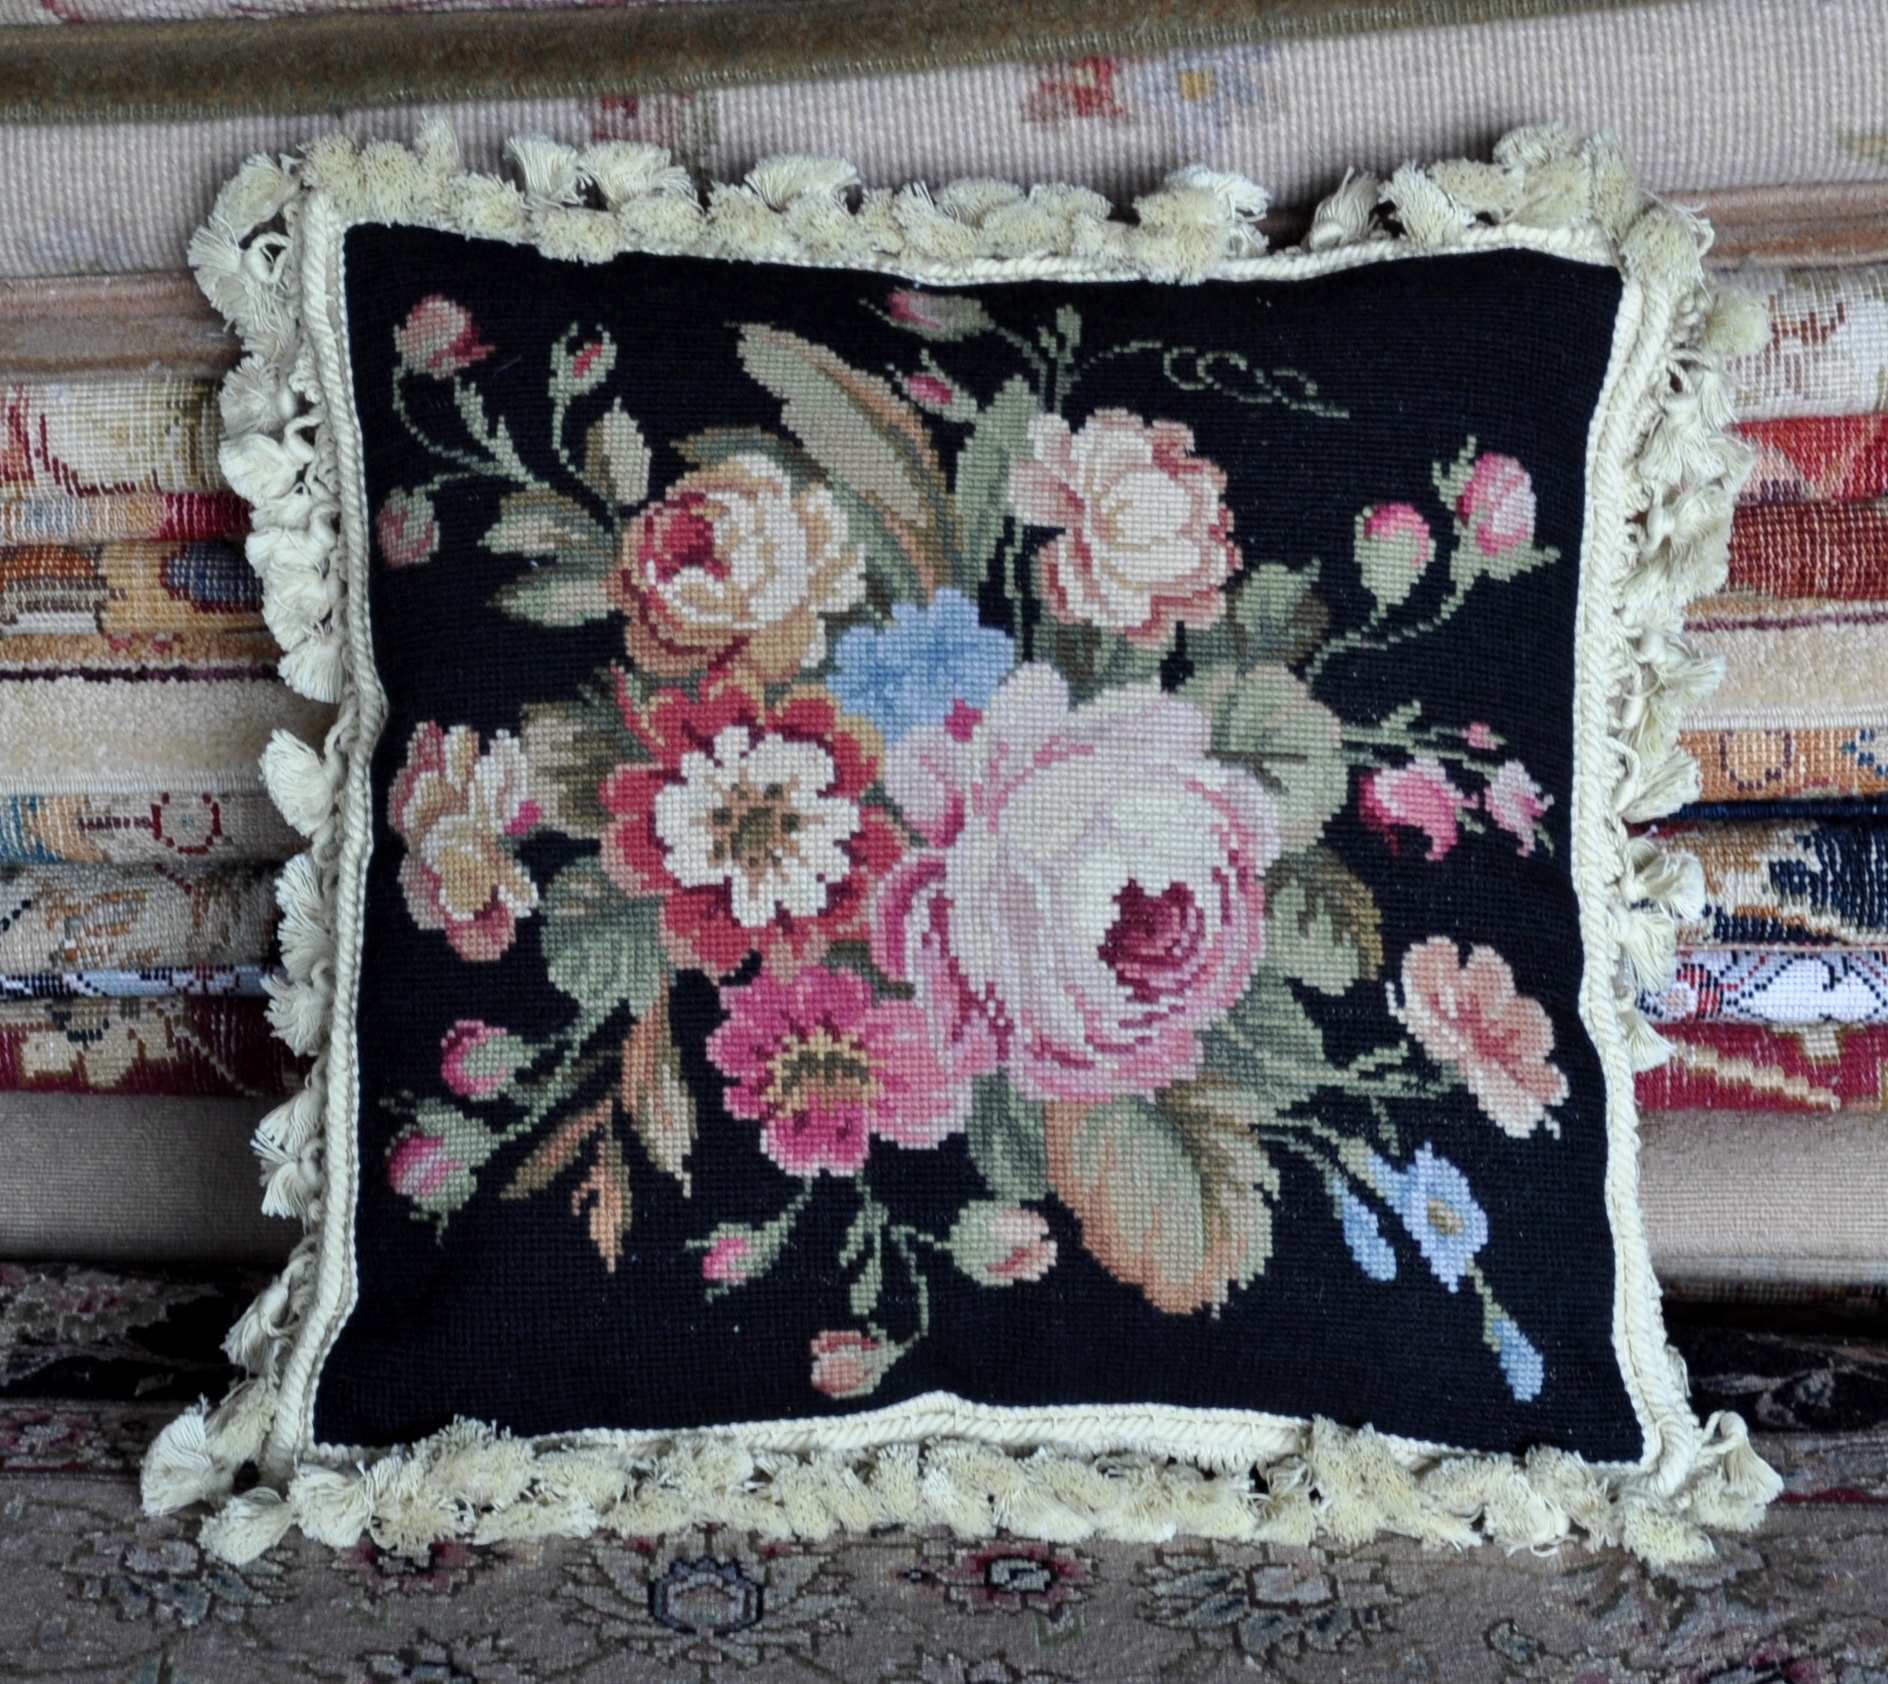 16″ x 16″ Handmade Wool Needlepoint Roses Black Cushion Cover Pillow Case 12980899